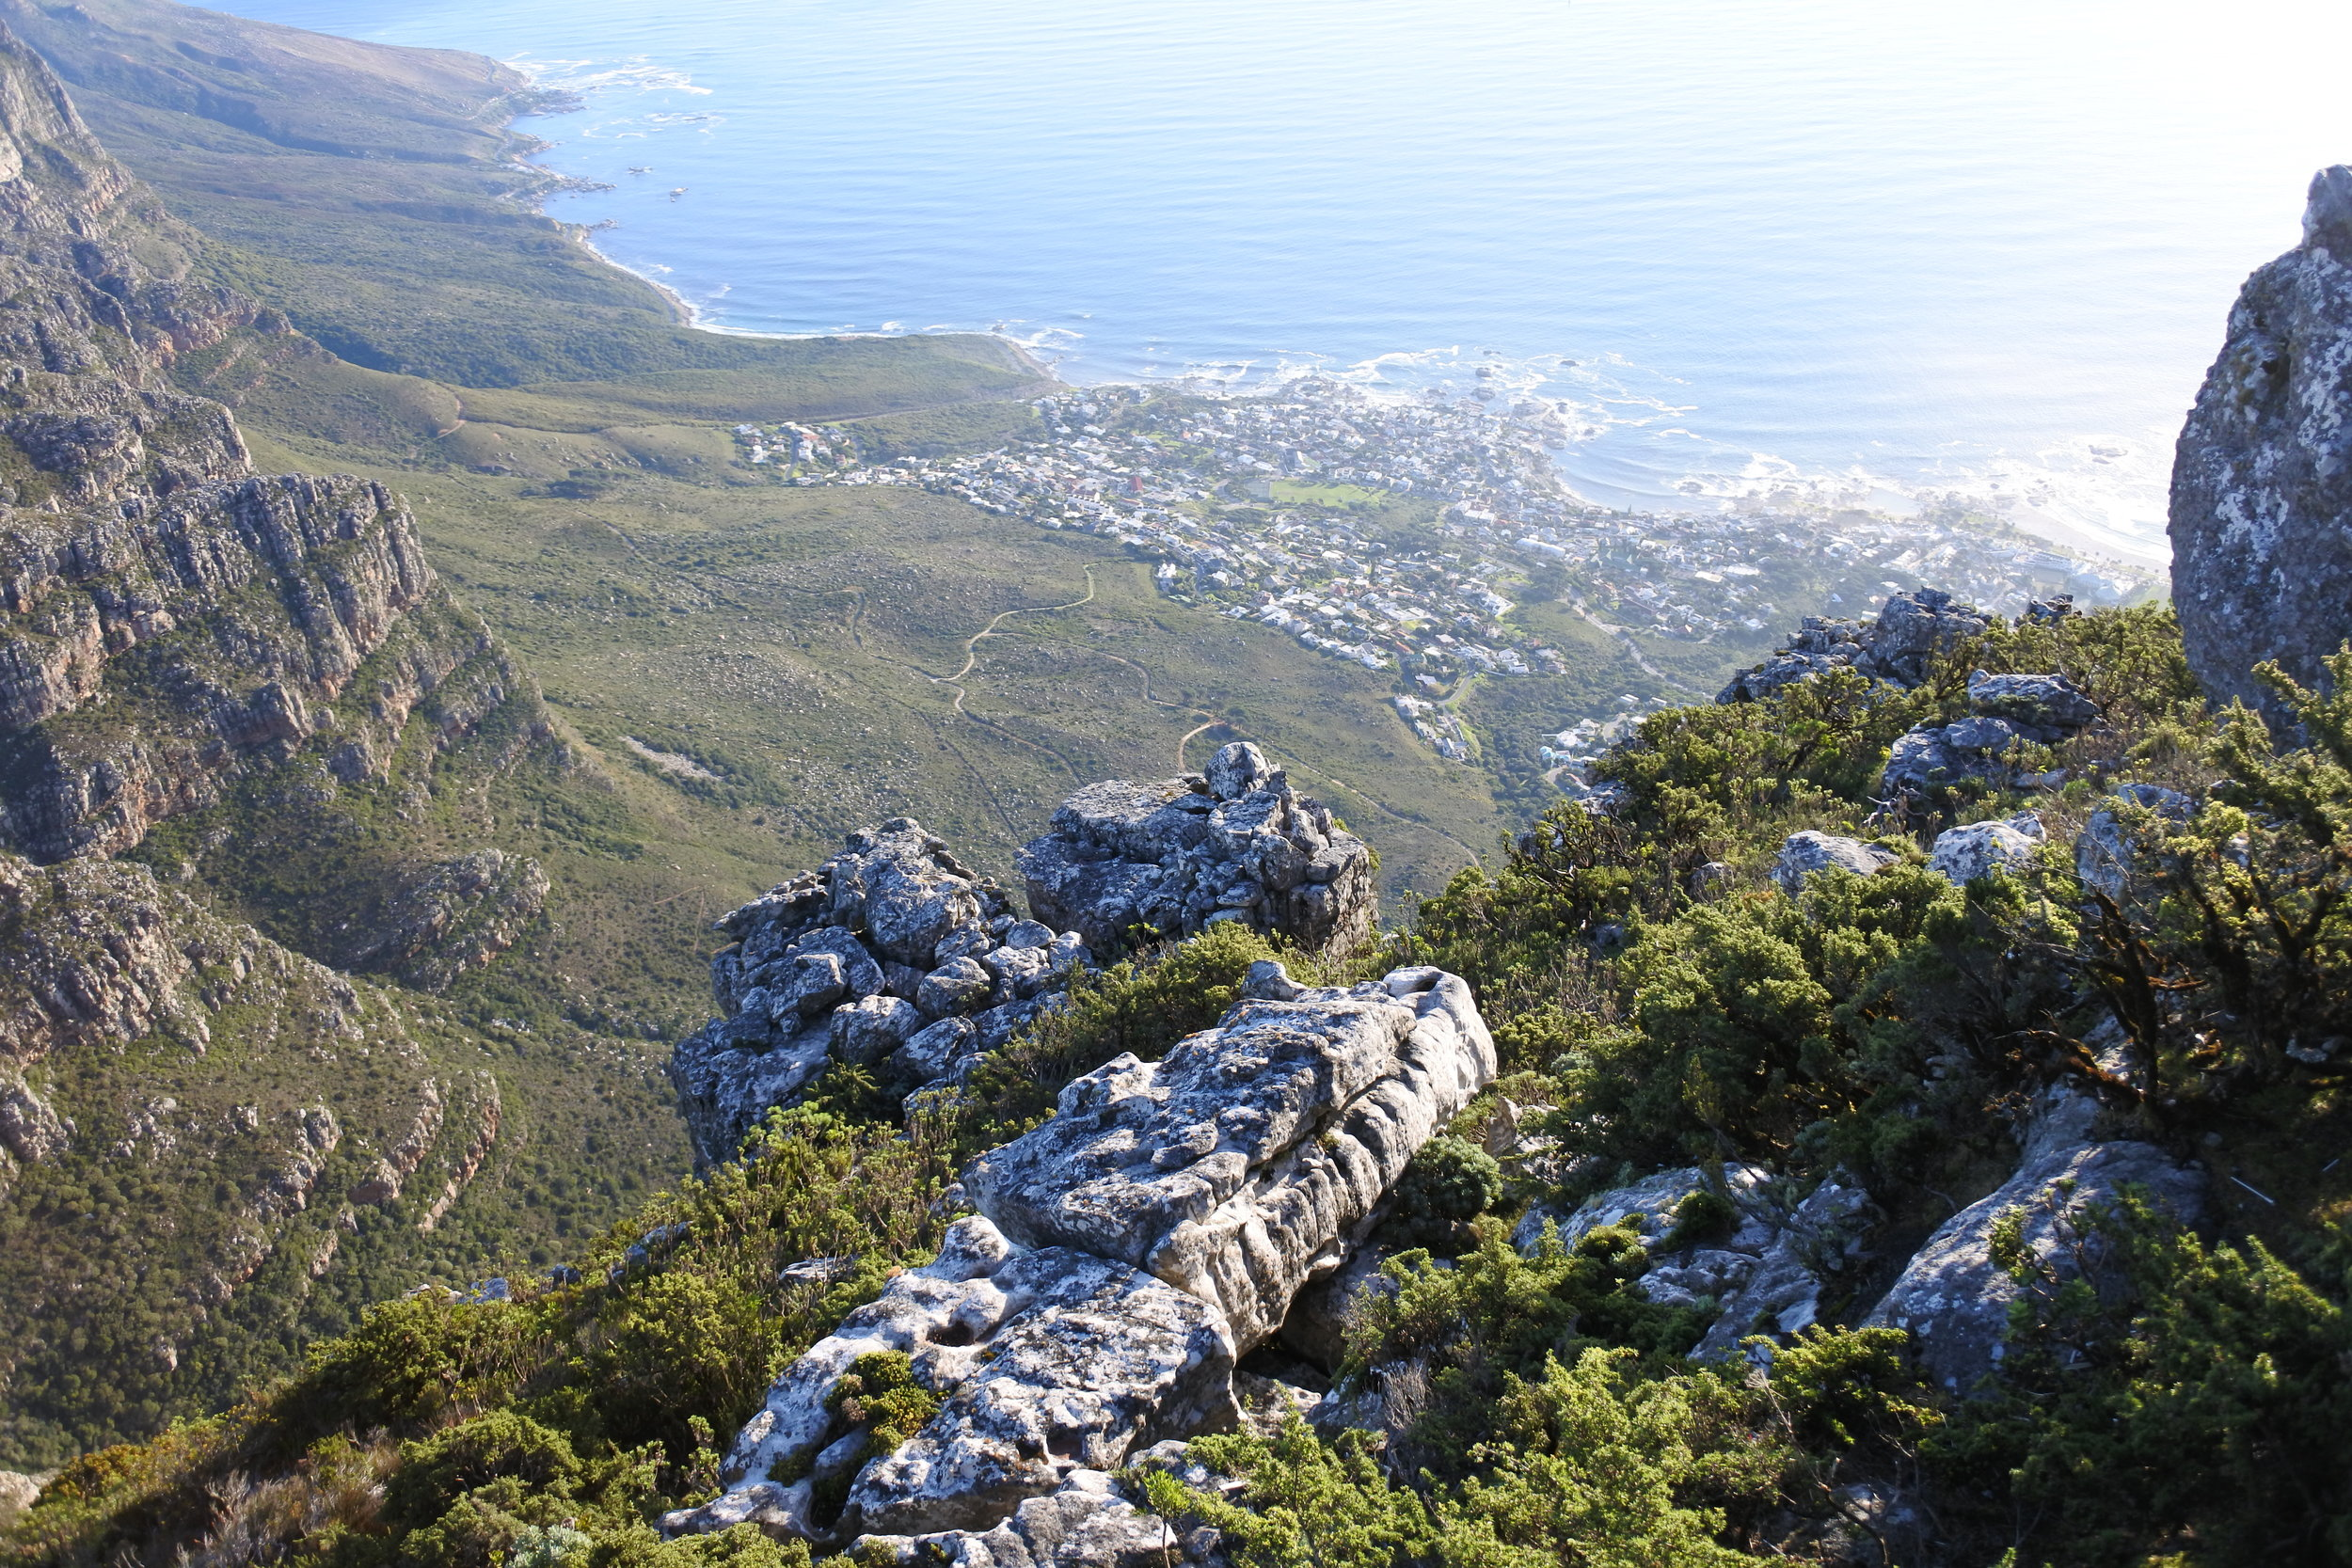 Hiking the Table Mountain